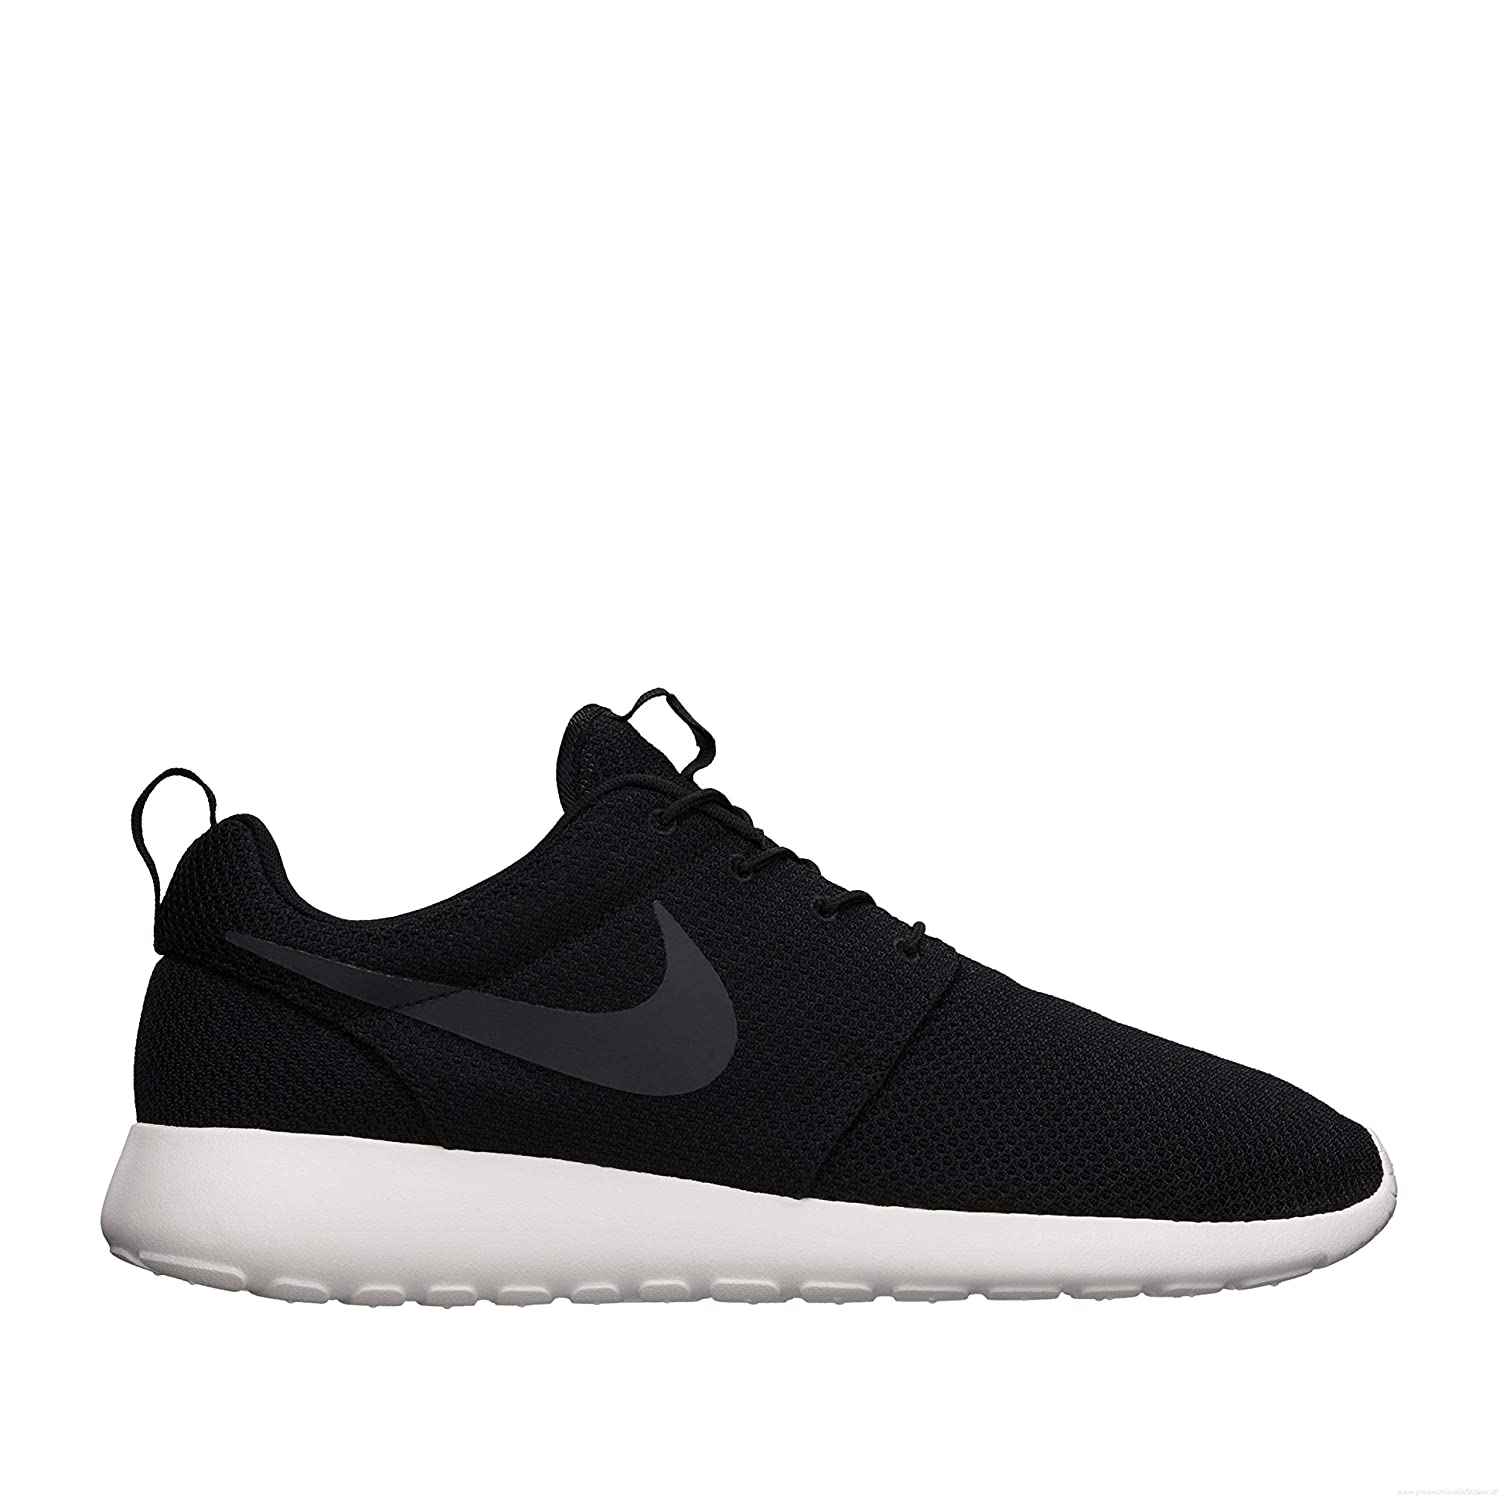 Nike Roshe Run (Black/Anthracite-Sail)